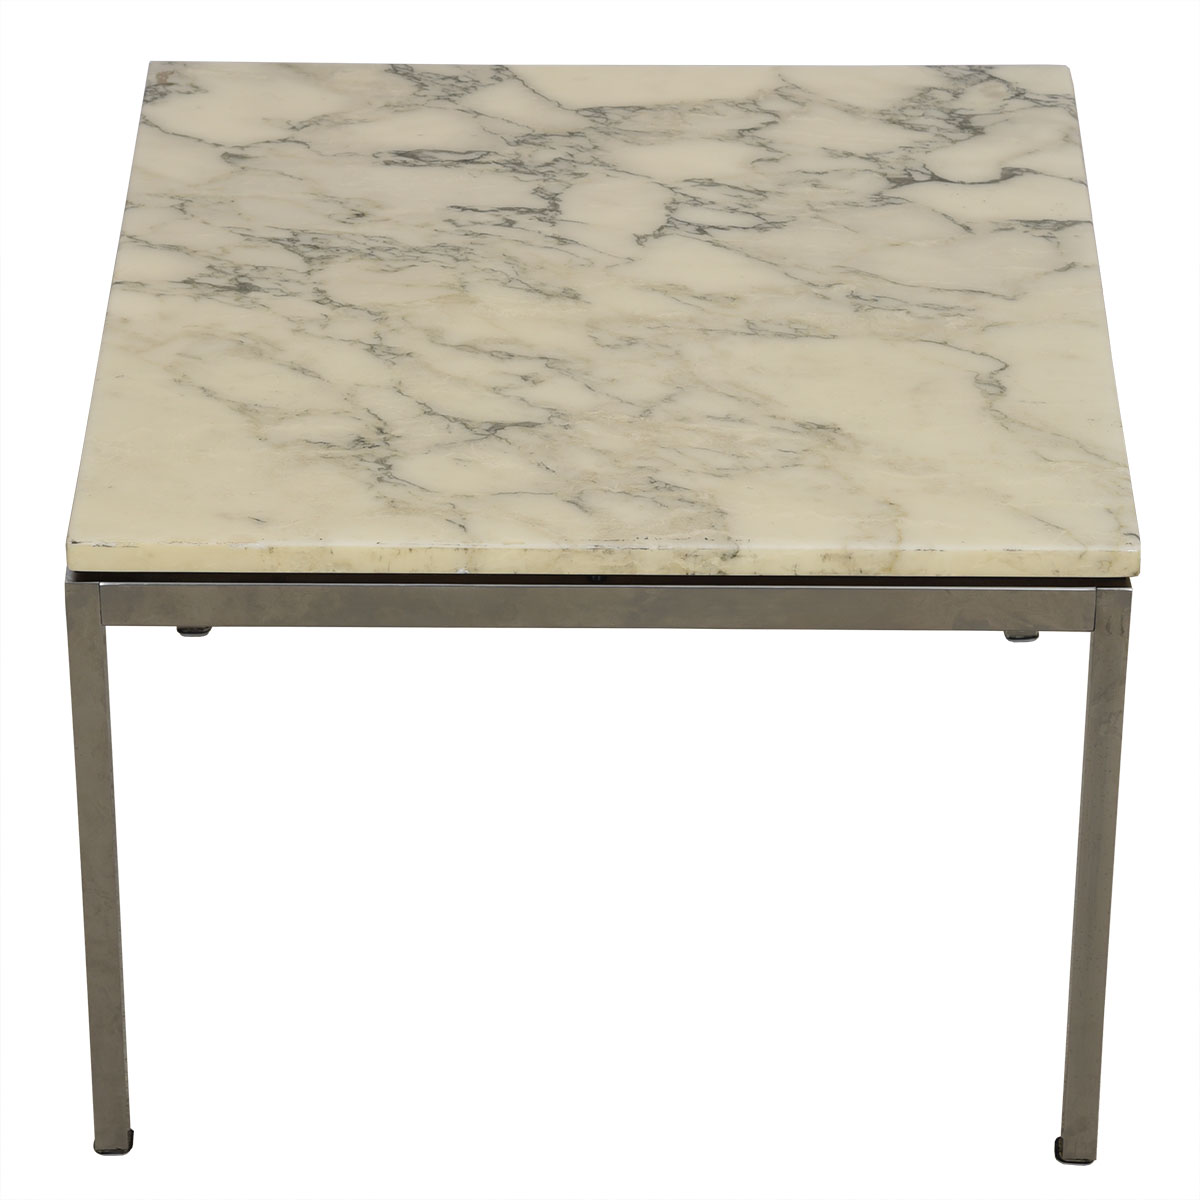 Mid Century Marble & Chrome Accent Table by Knoll.